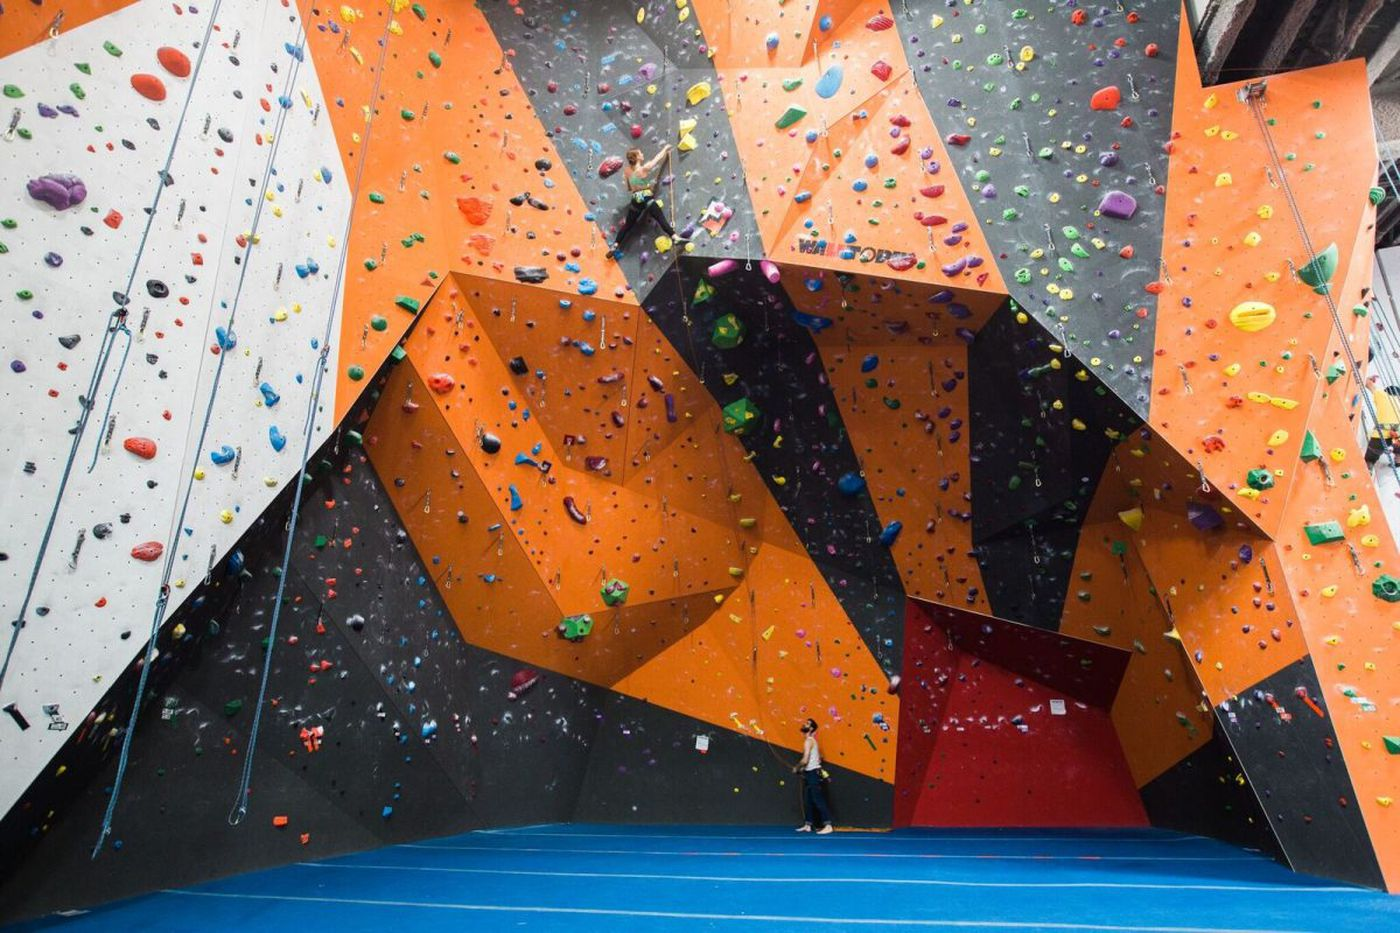 The Cliffs climbing gym to open in Philly, first location outside New York